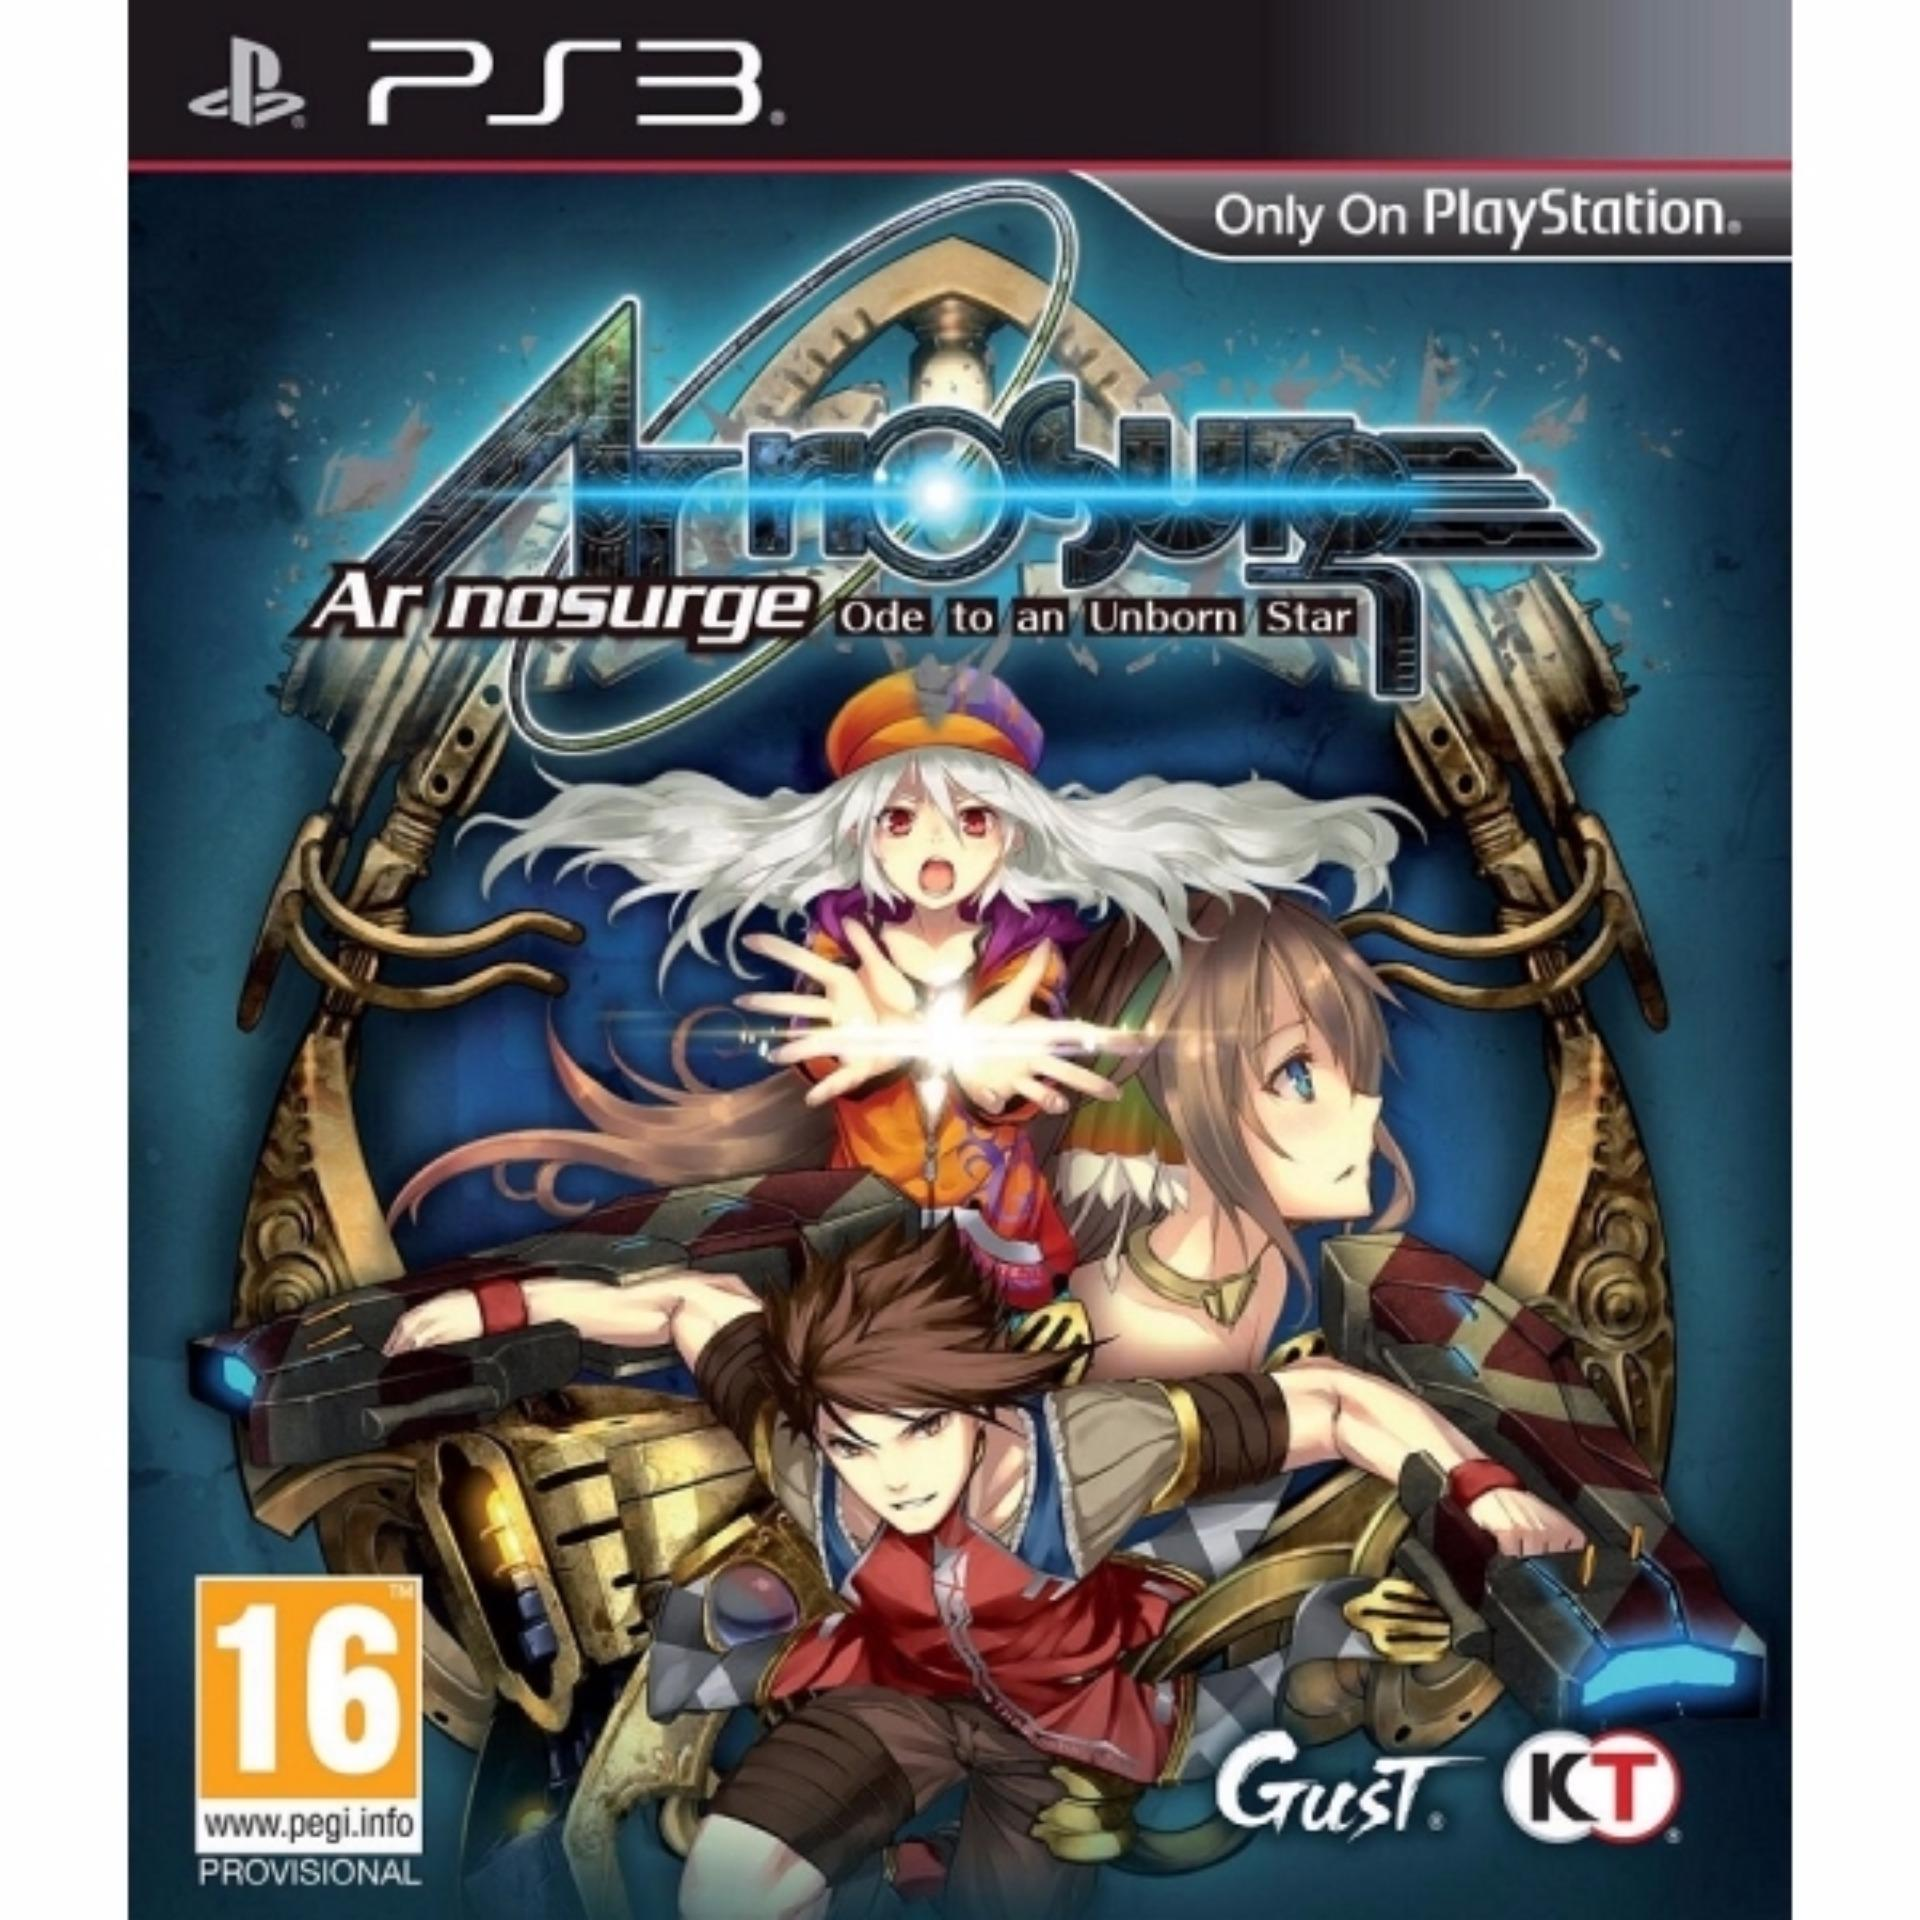 PS3 Ar Nosurge: Ode to an Unborn Star